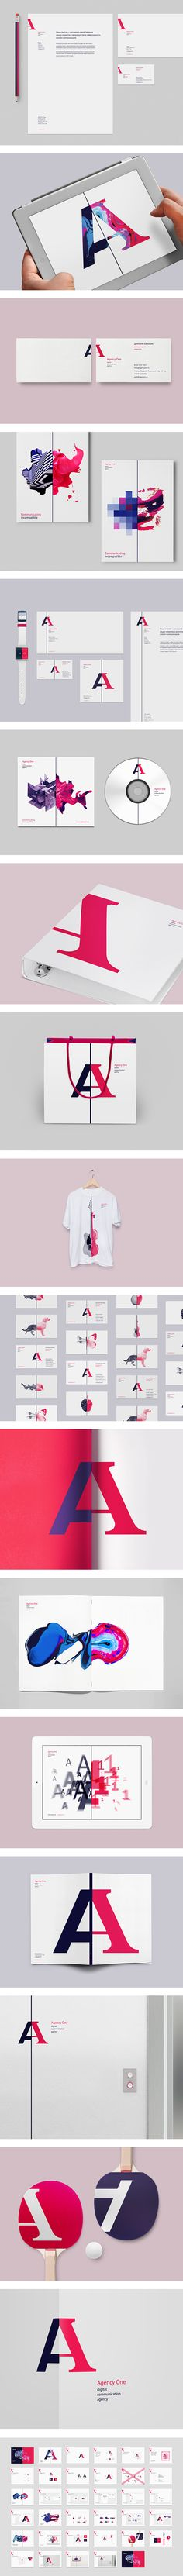 Agency One by Vova Lifanov #branding